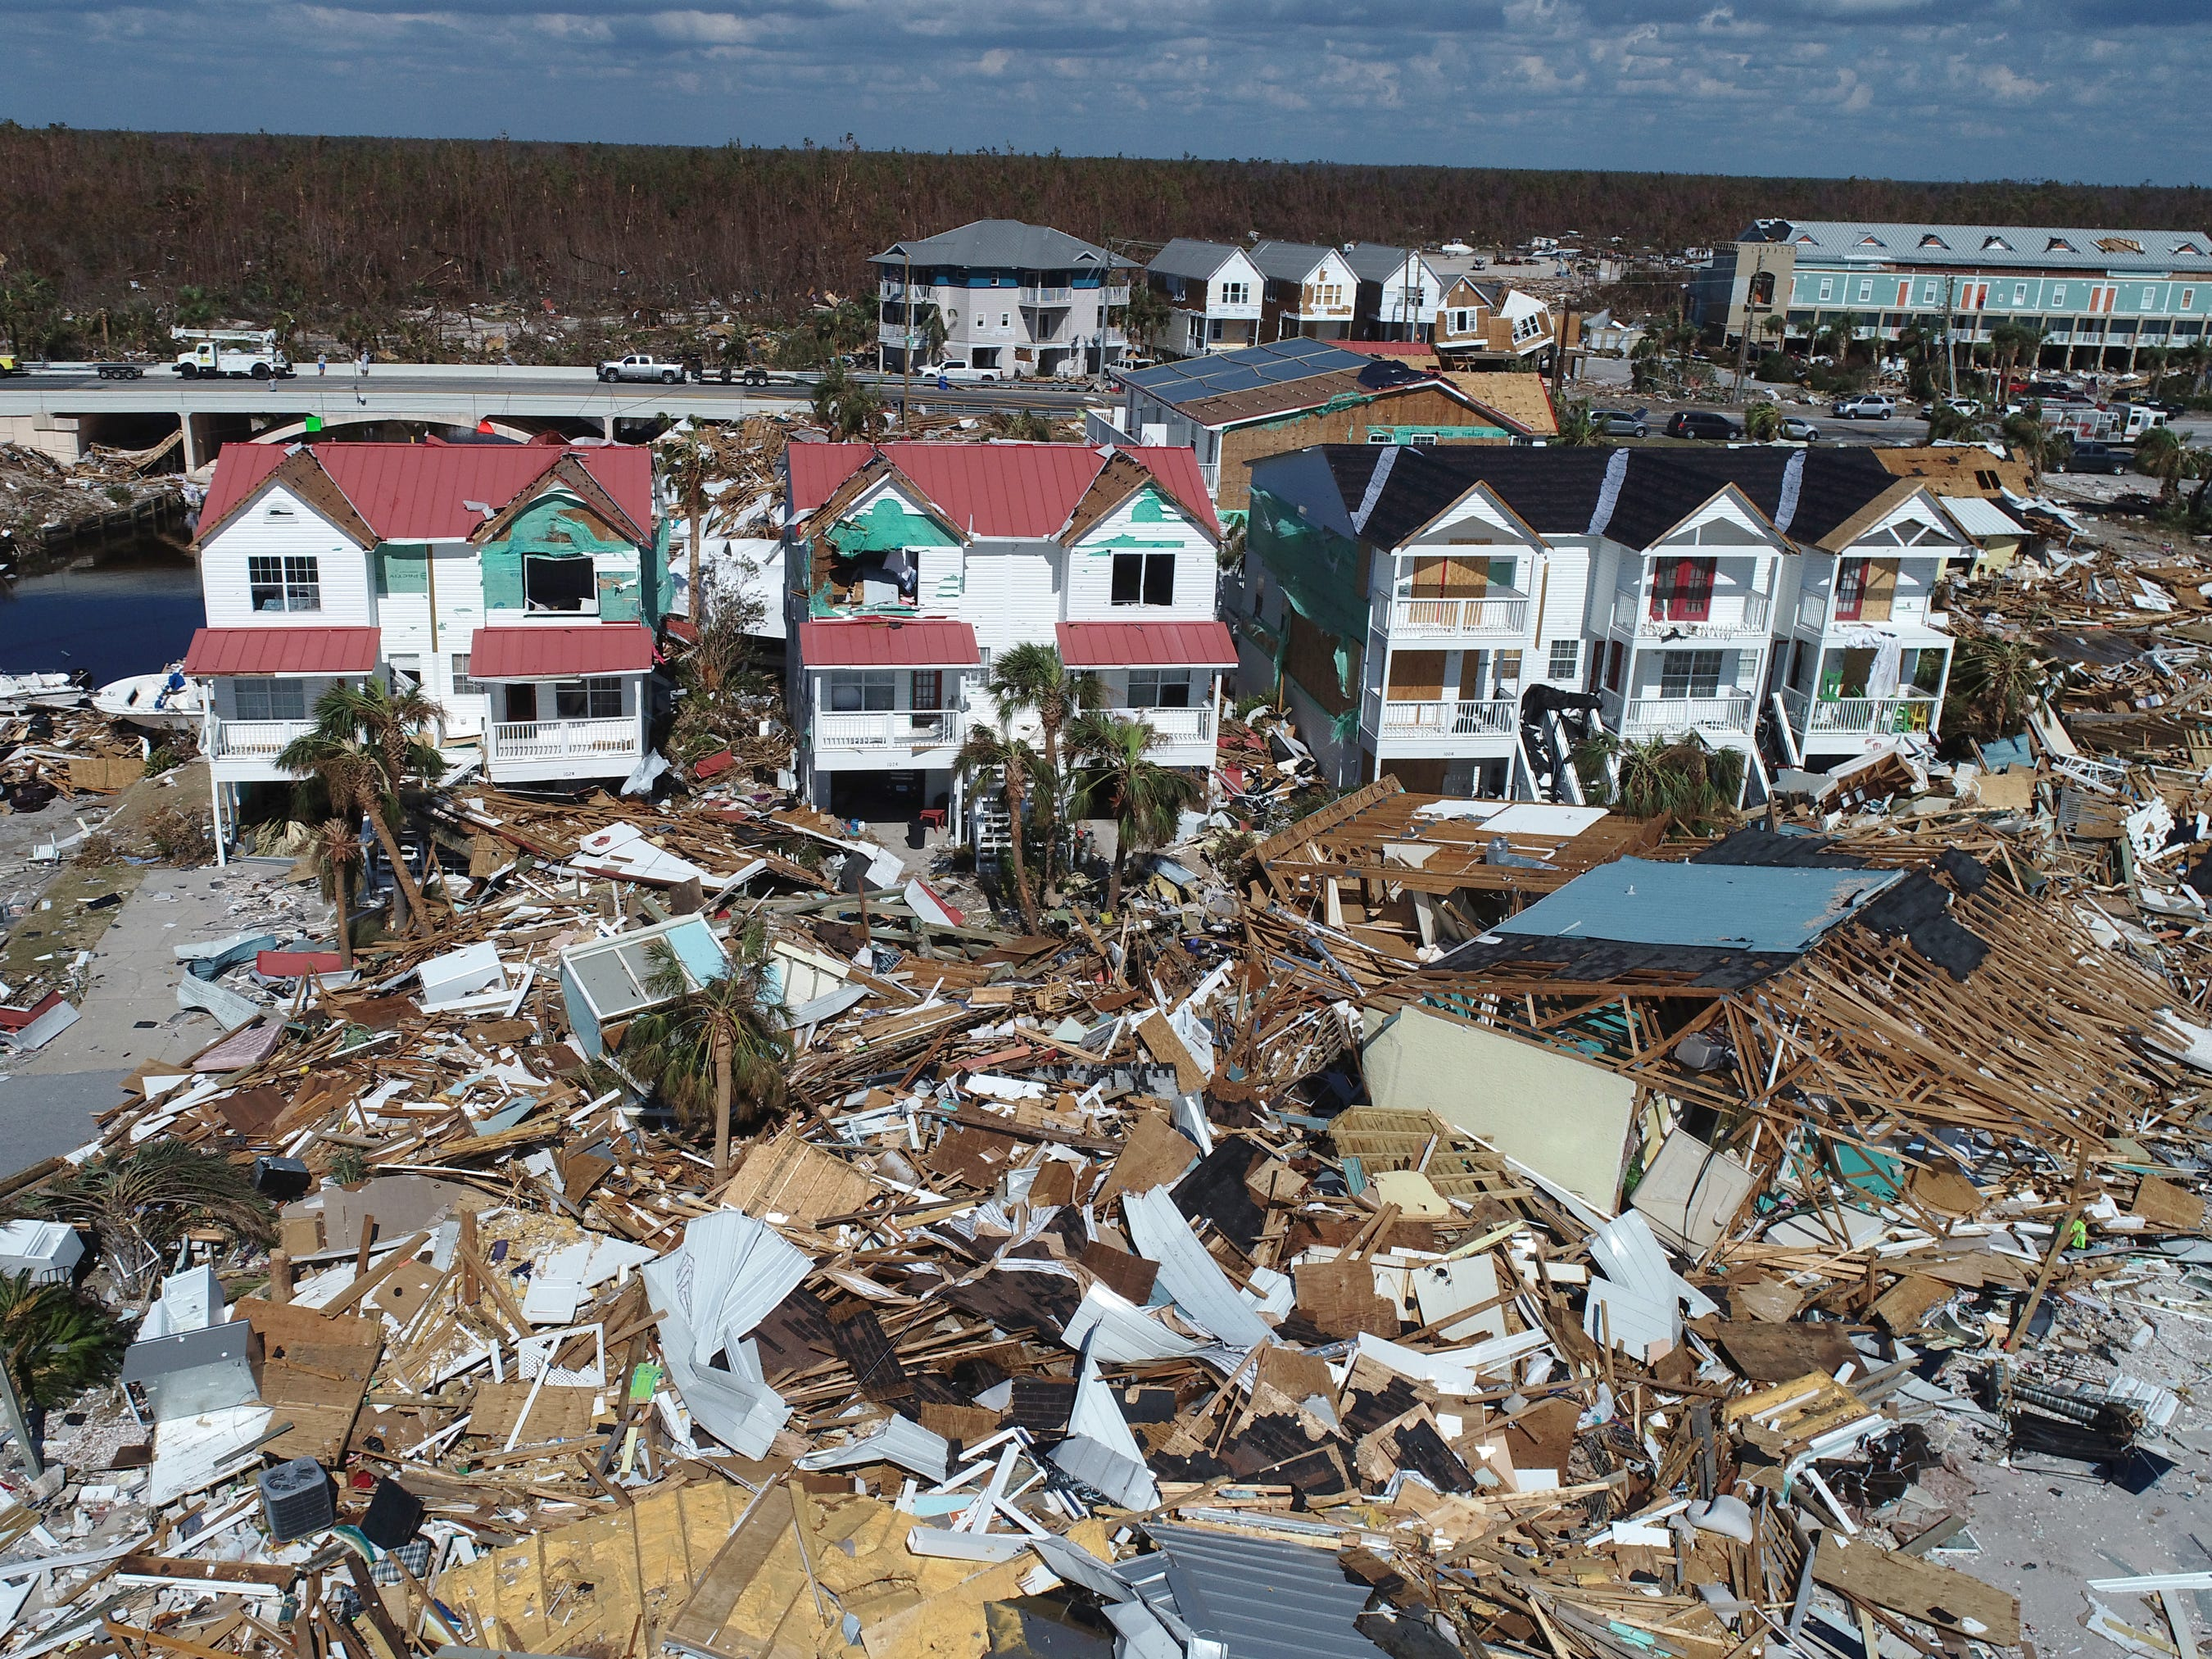 An Aerial view of the devastating impact Hurricane Michael left behind along the Florida Panhandle's coastal town of Mexico Beach, Oct. 16, 2018.